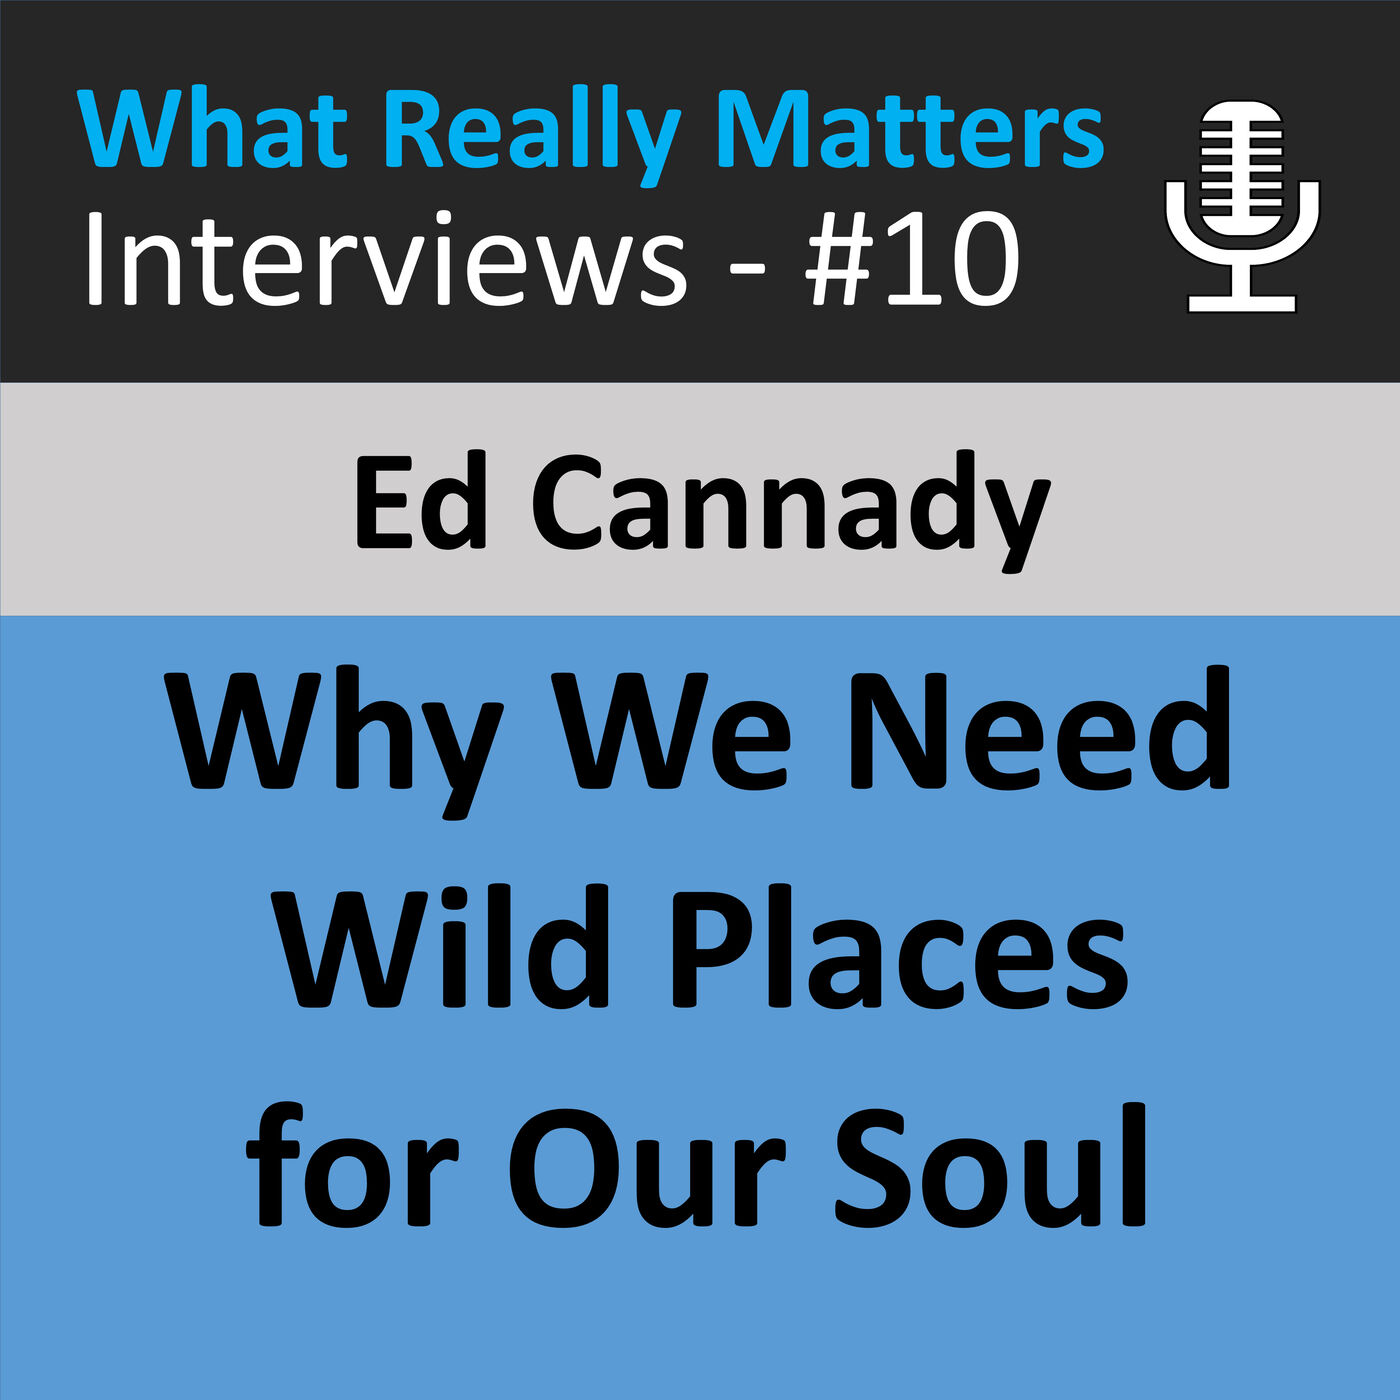 WRMI 010: Ed Cannady // Why We Need Wild Places